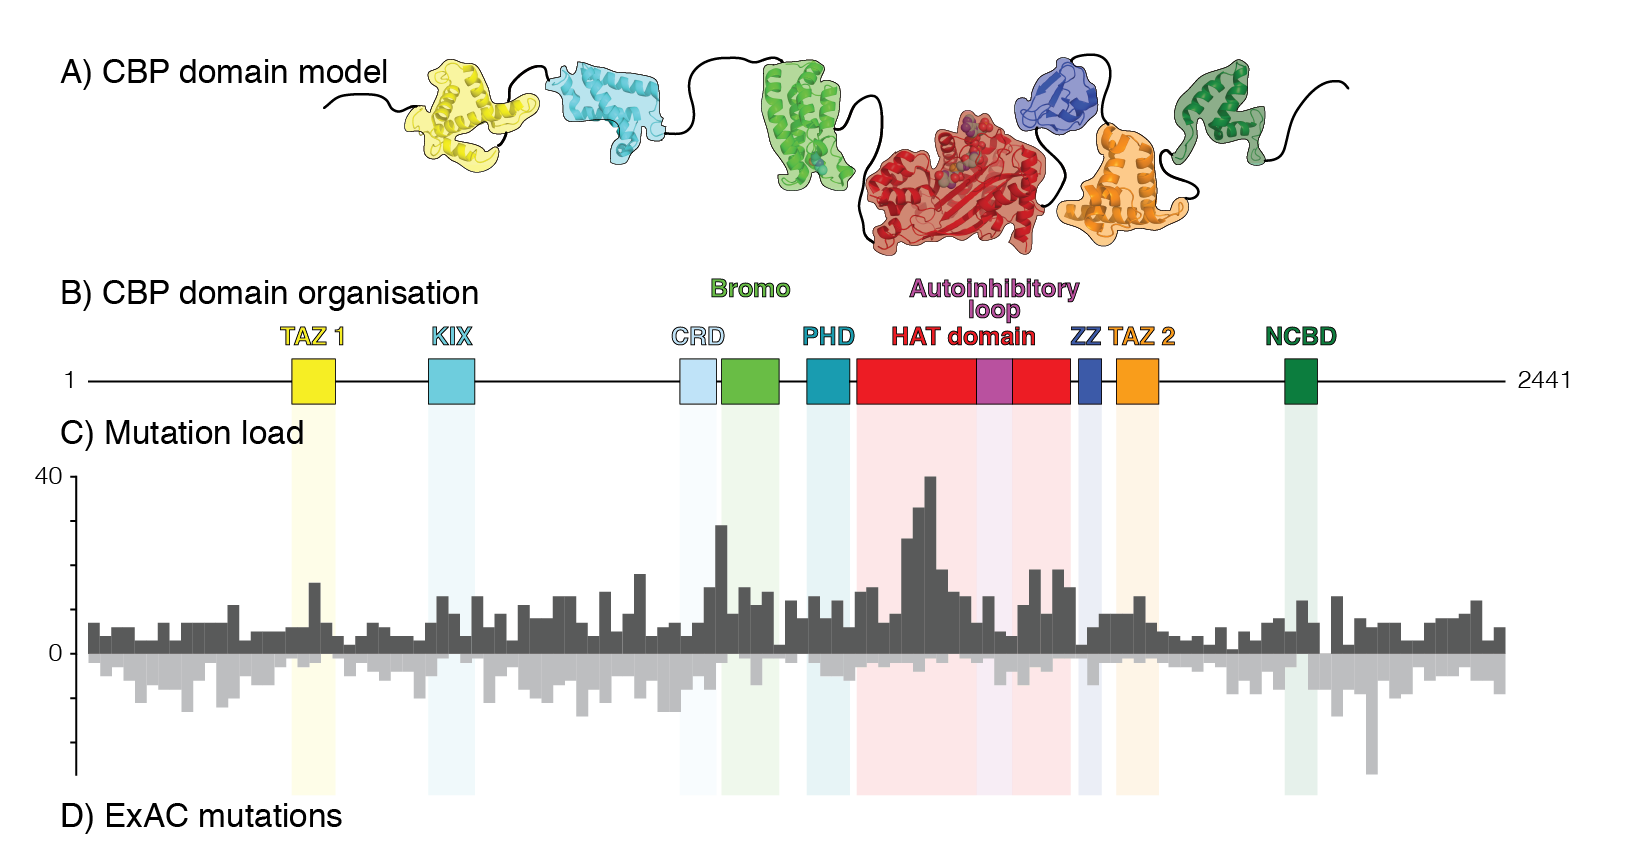 CBP domain model showing structures and disordered regions (A) and domain organization (B). C-D) Distribution of CBP mutations in cancer (cBioPortal, C)compared to mutiatons with no disease phenotype (ExAC, D); cancer mutations cluster within TF binding and catalytic domains.